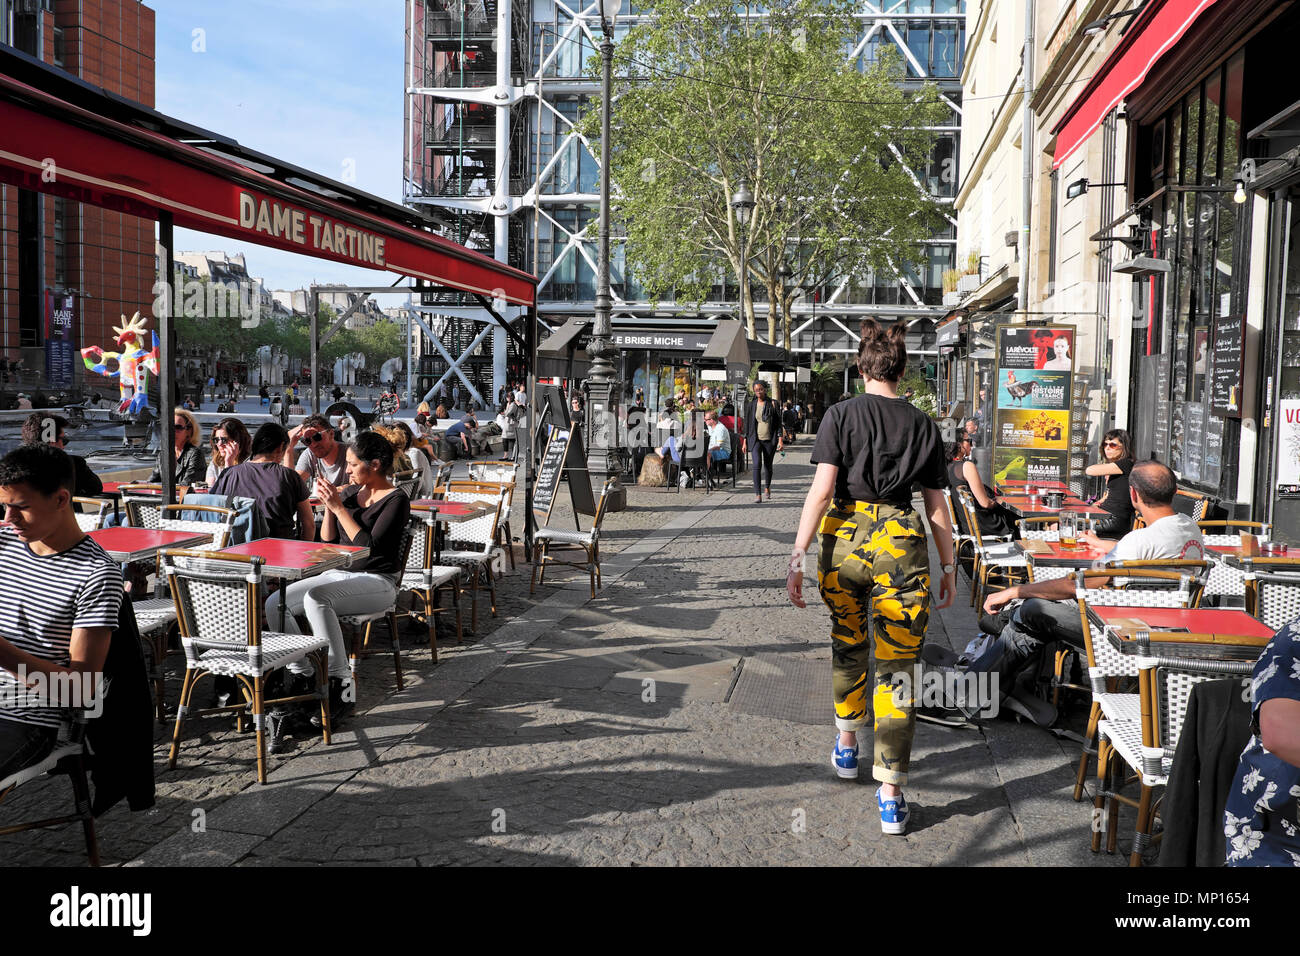 Paris street scene outside Dame Tartine on Rue Brisemiche with a view of the Pompidou Centre building in spring Paris France Europe  KATHY DEWITT - Stock Image